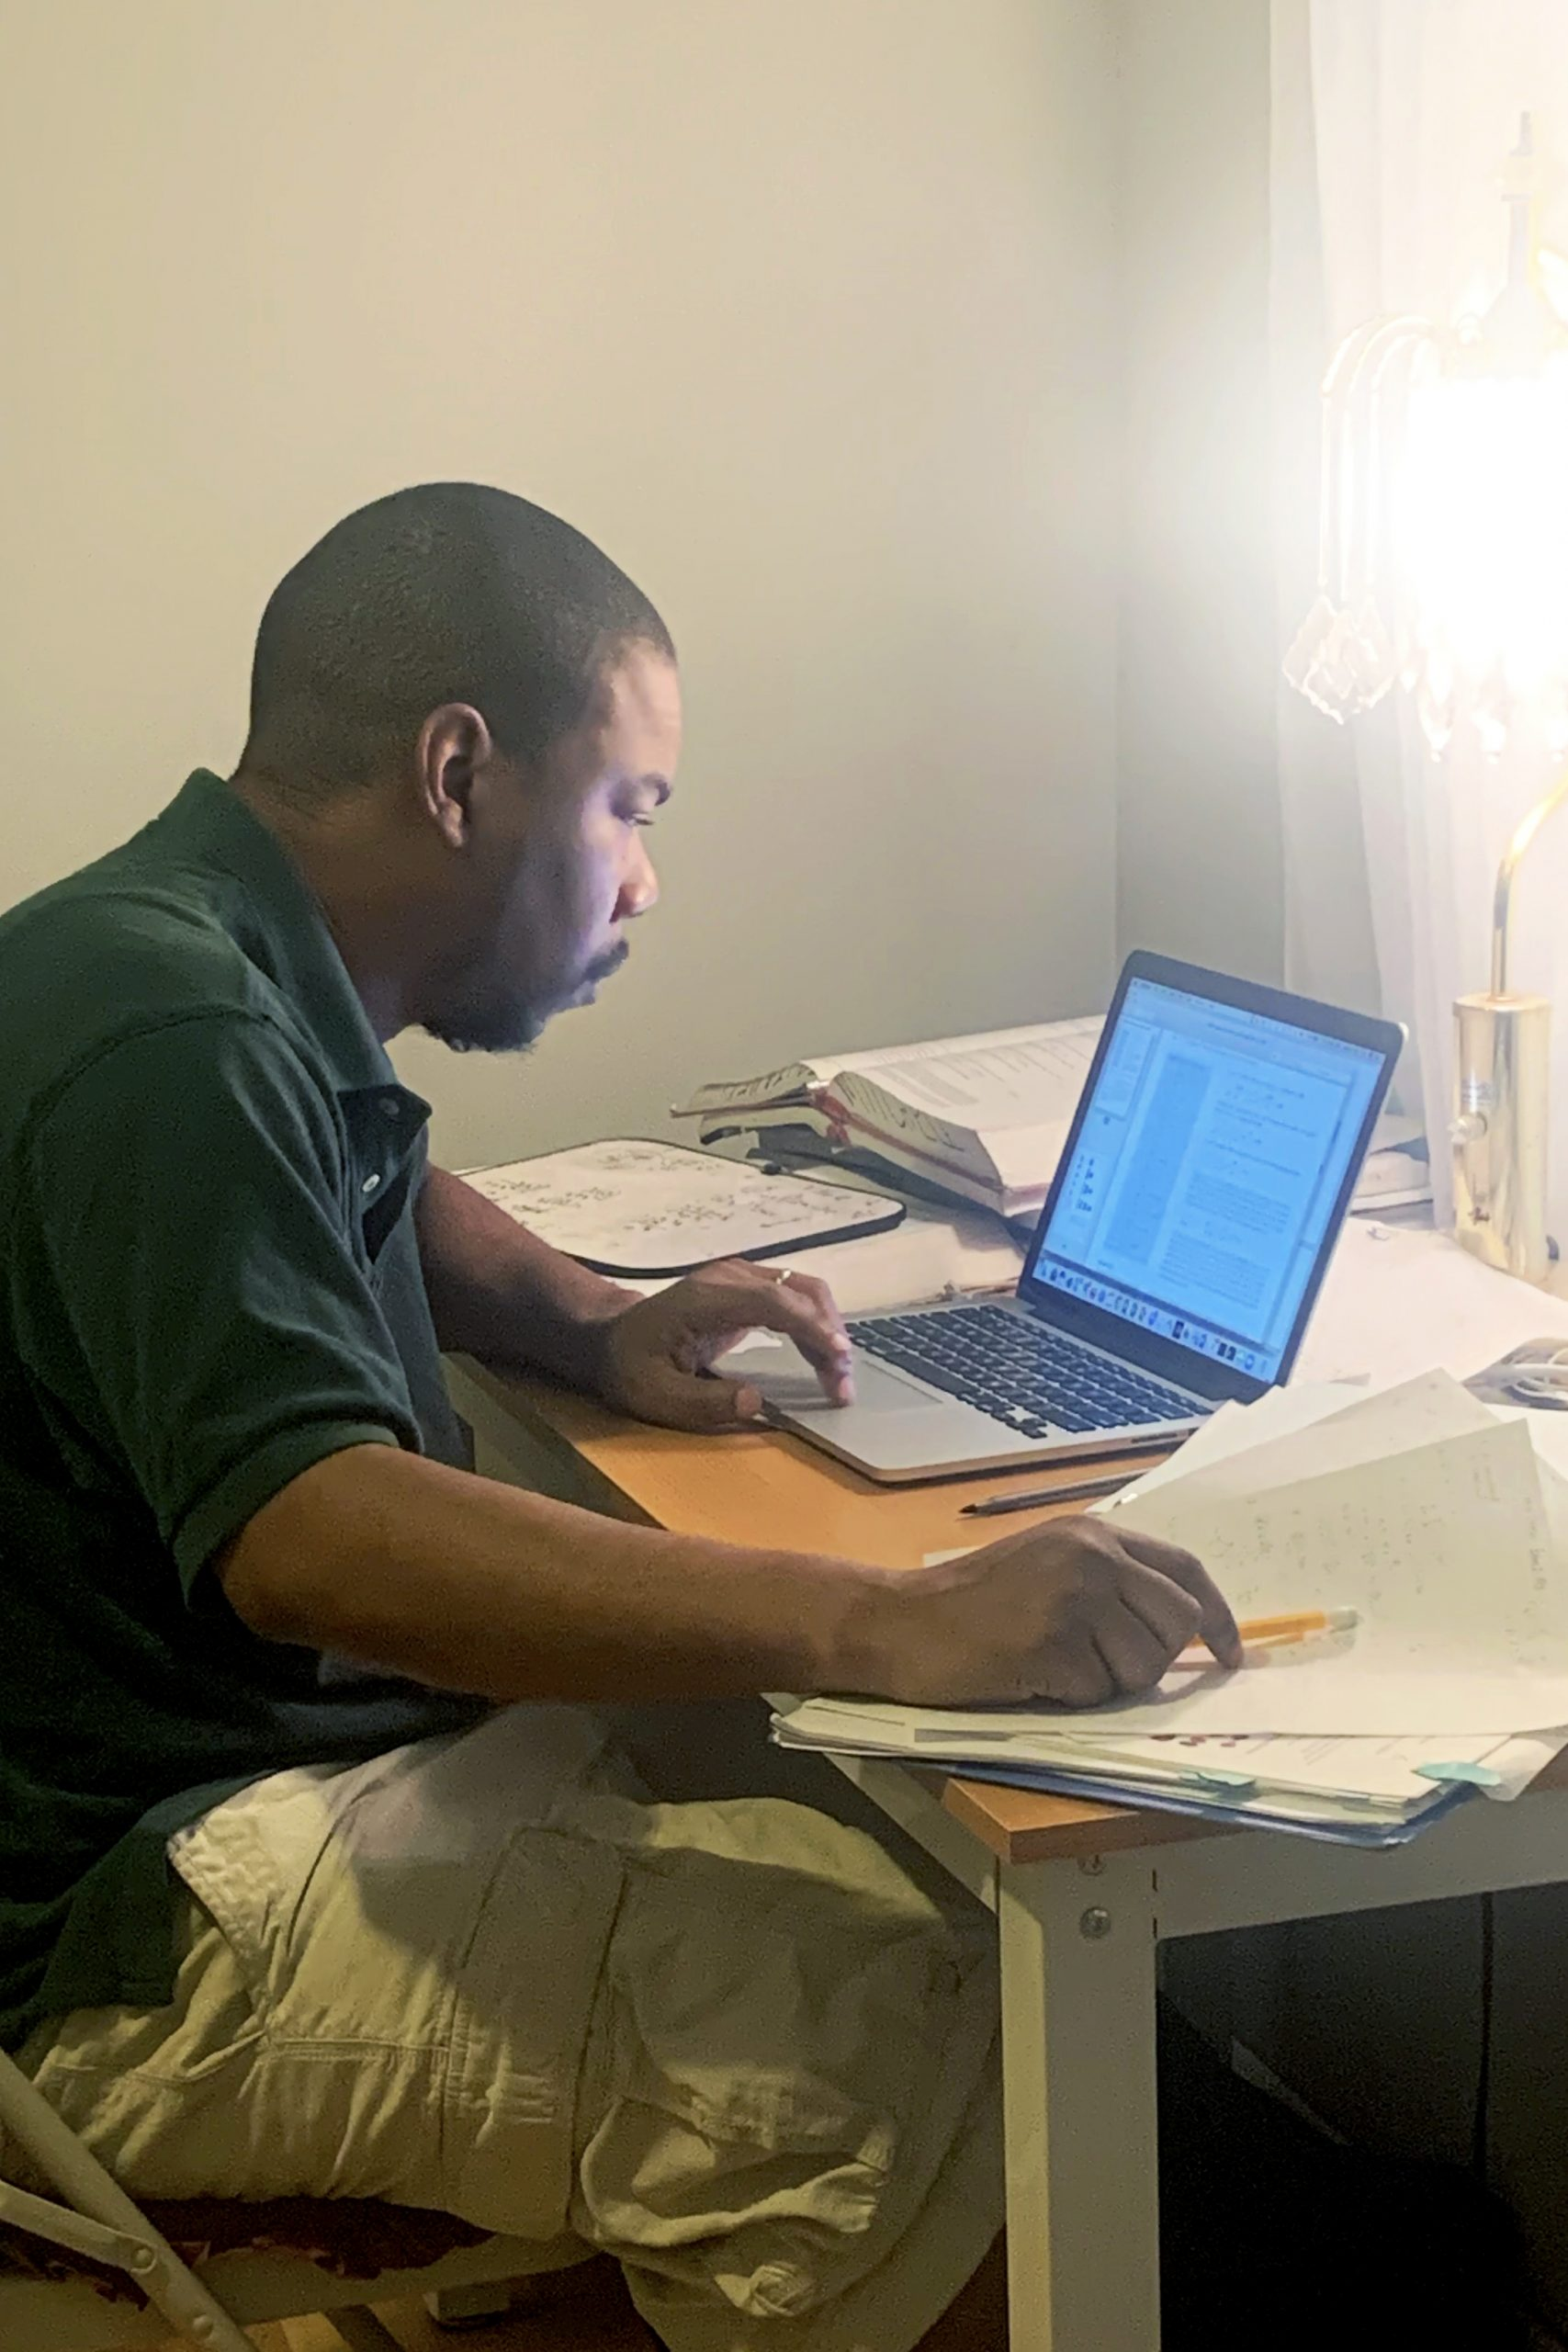 Jaired Tate's home office